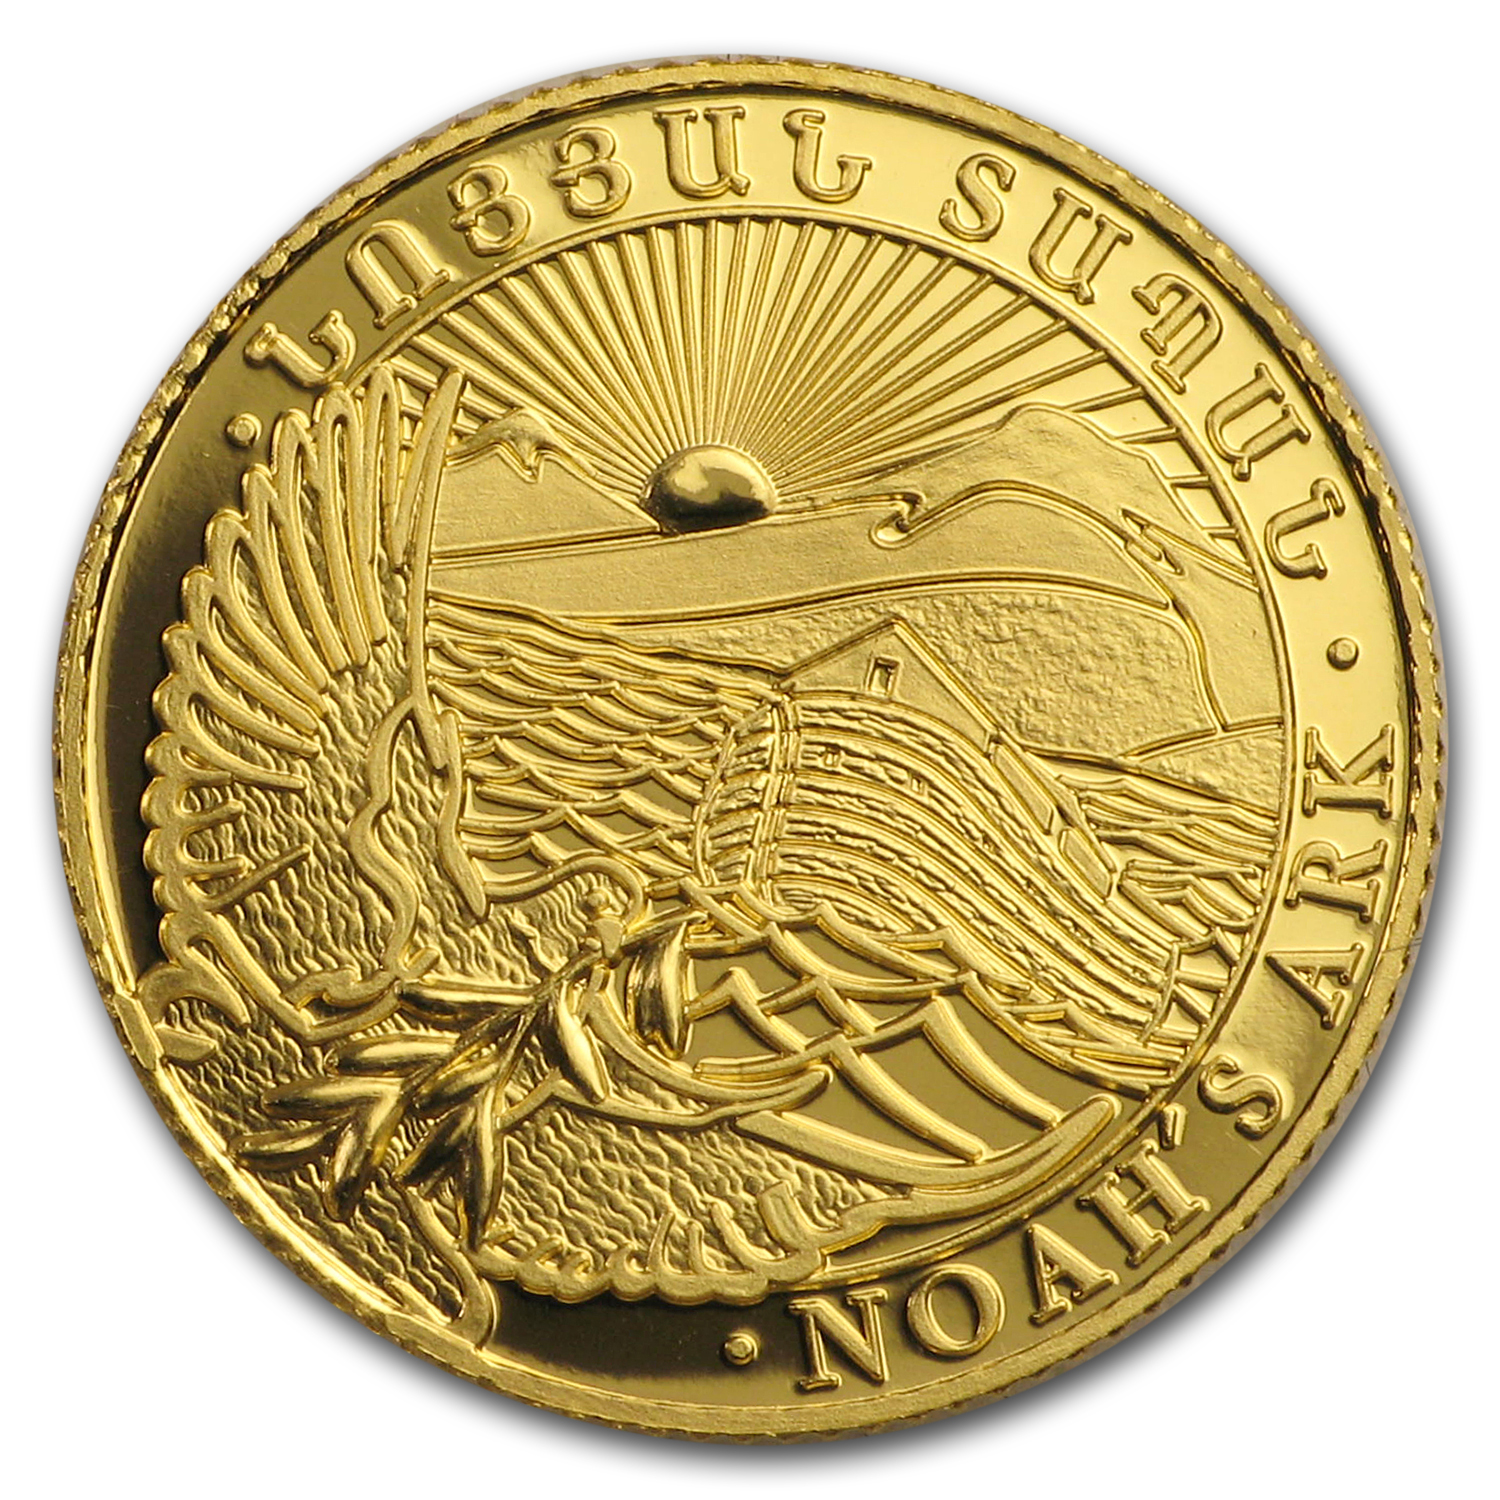 2017 Armenia 1 gram Gold 100 Dram Noah's Ark Proof